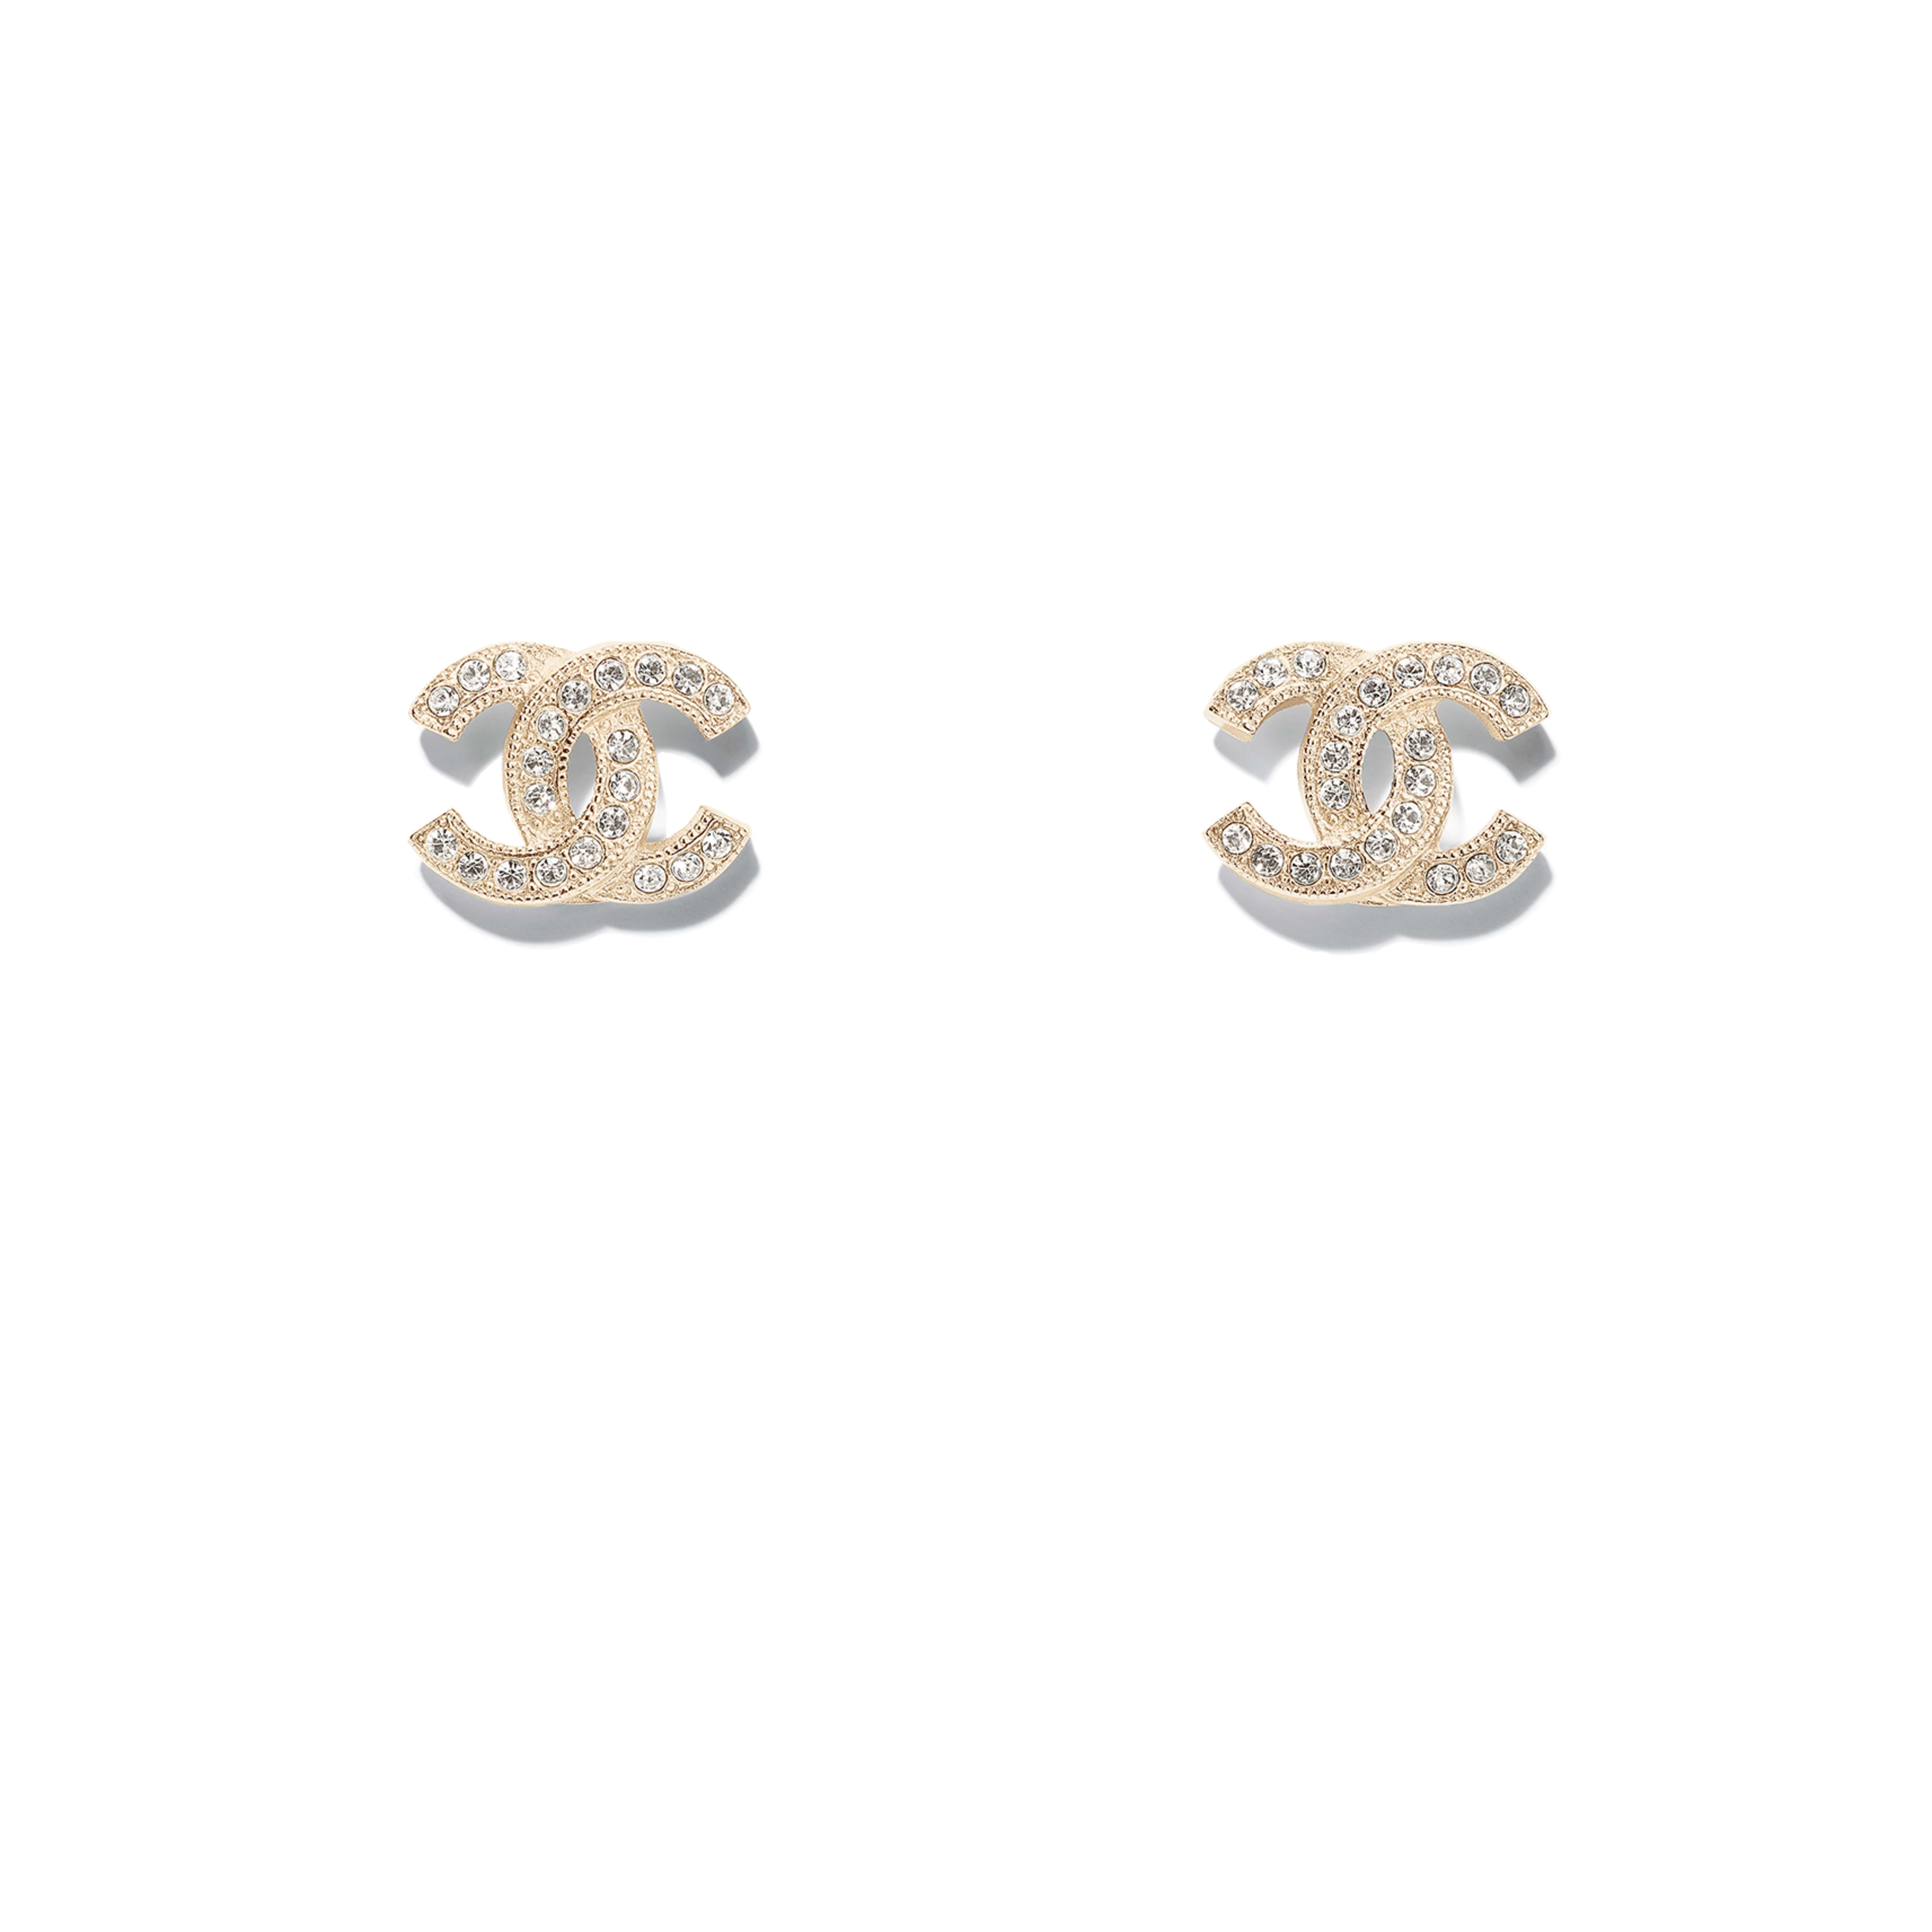 Earrings - Gold & Transparent - Metal & Strass - Default view - see full sized version